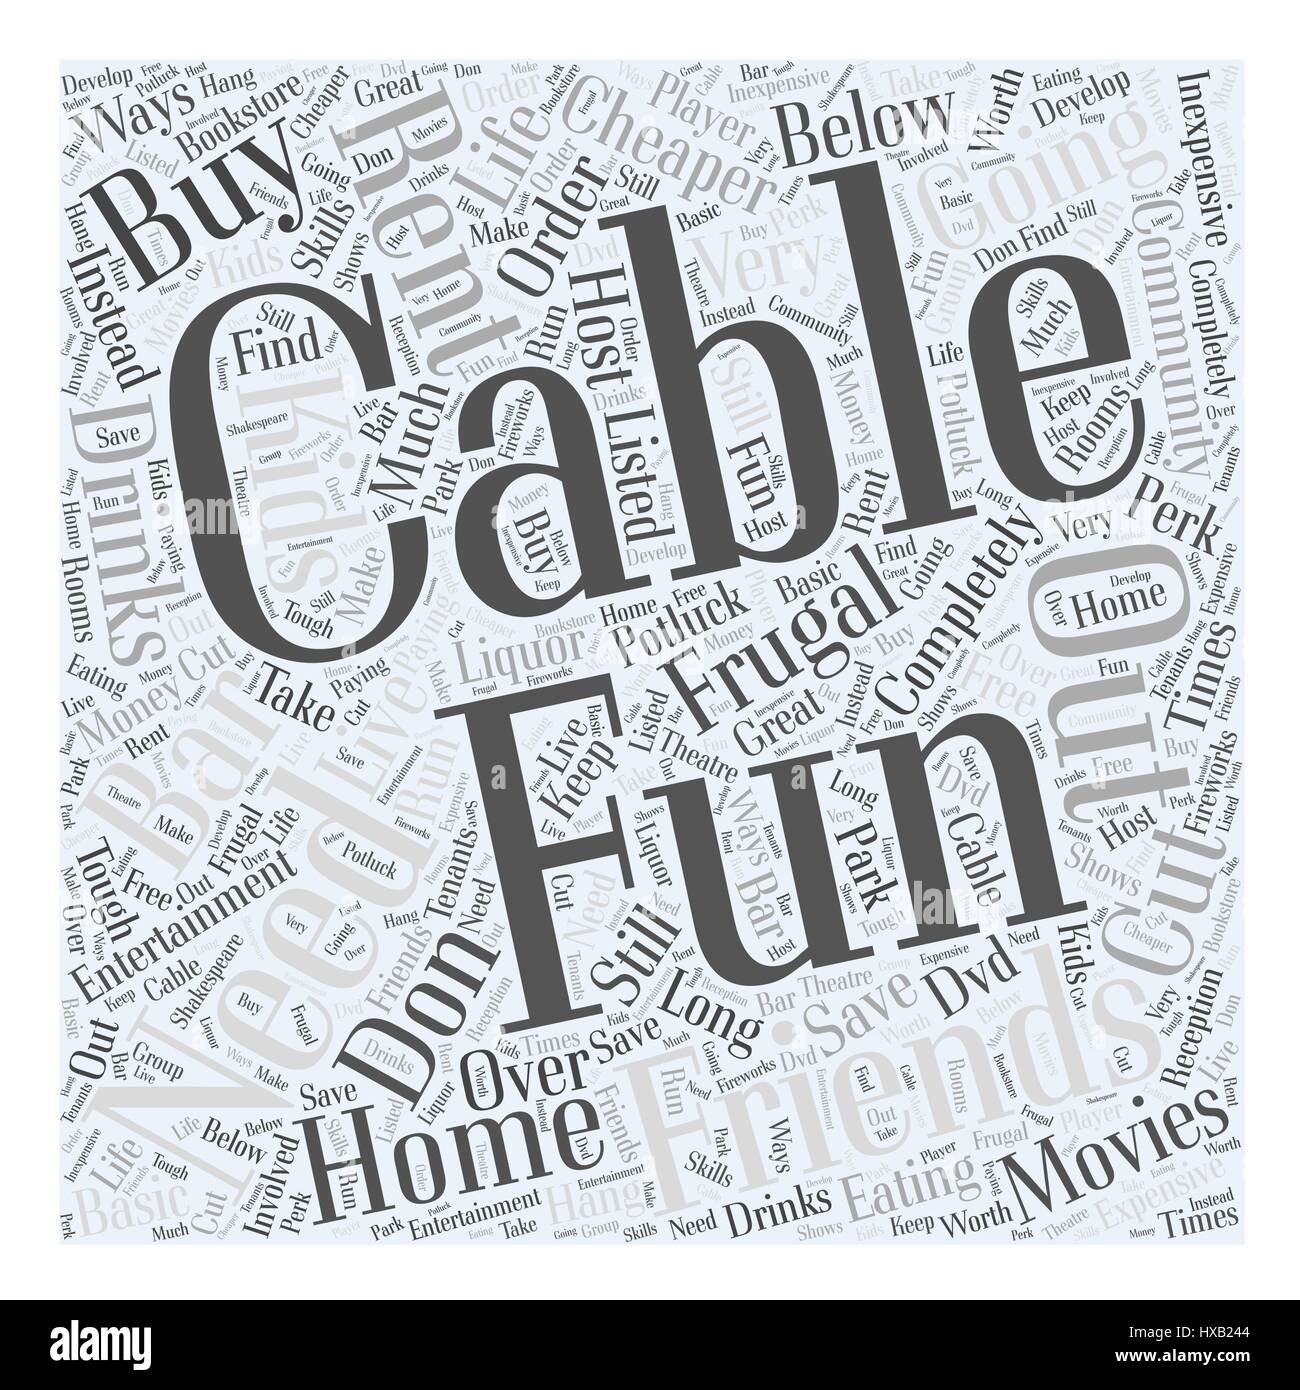 Have Fun Frugally Word Cloud Concept - Stock Image